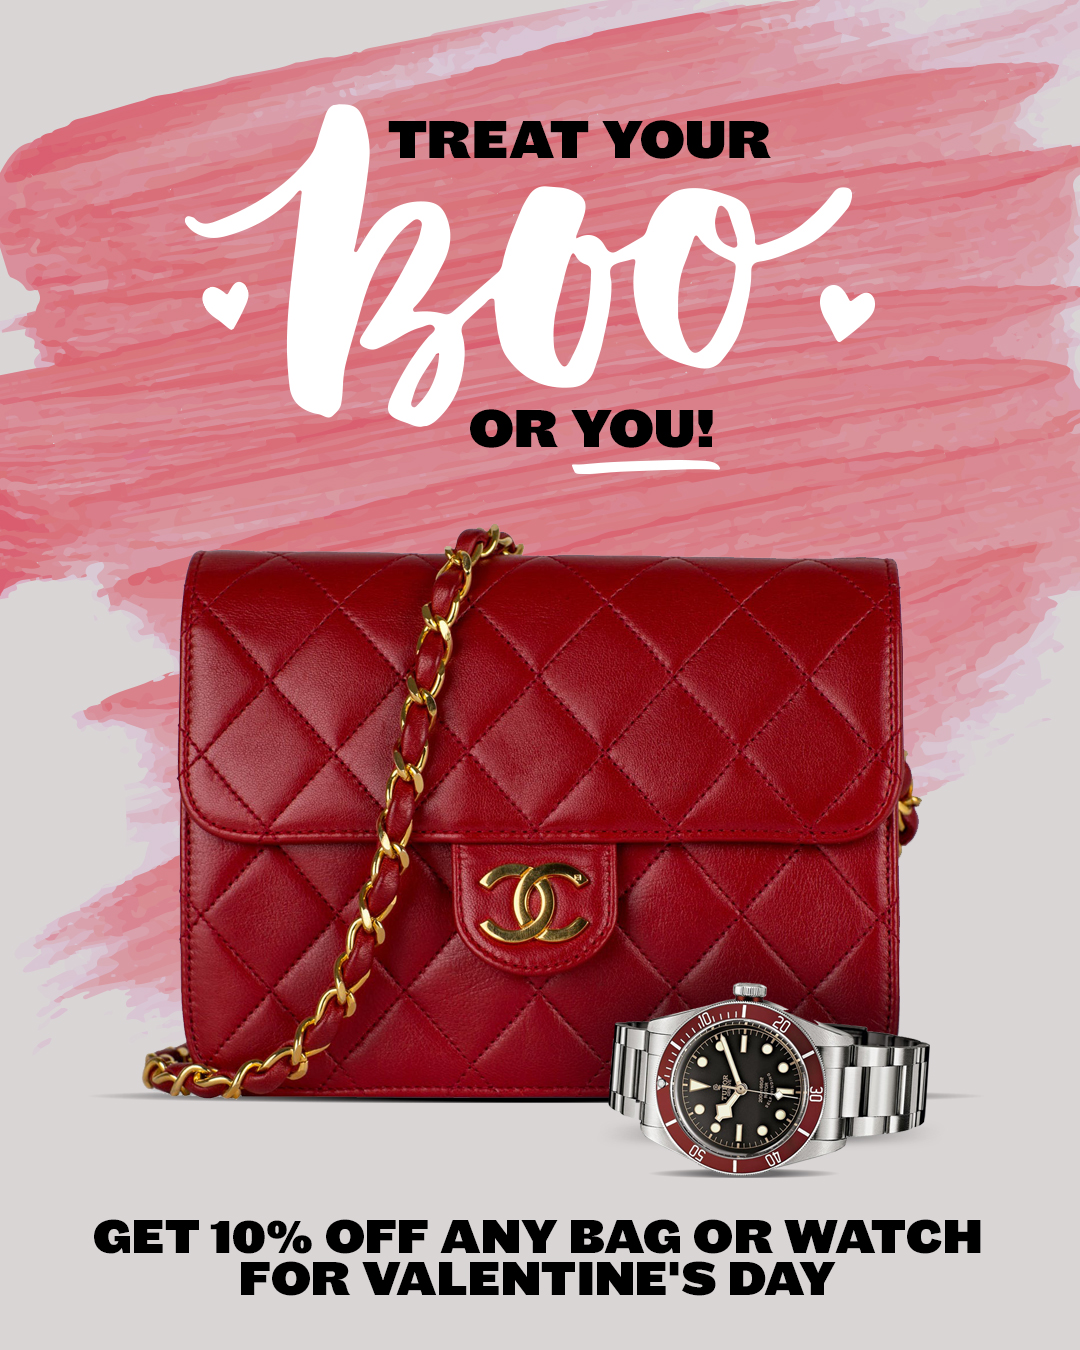 Get 10% Off Any Bag or Watch For Valentine's Day